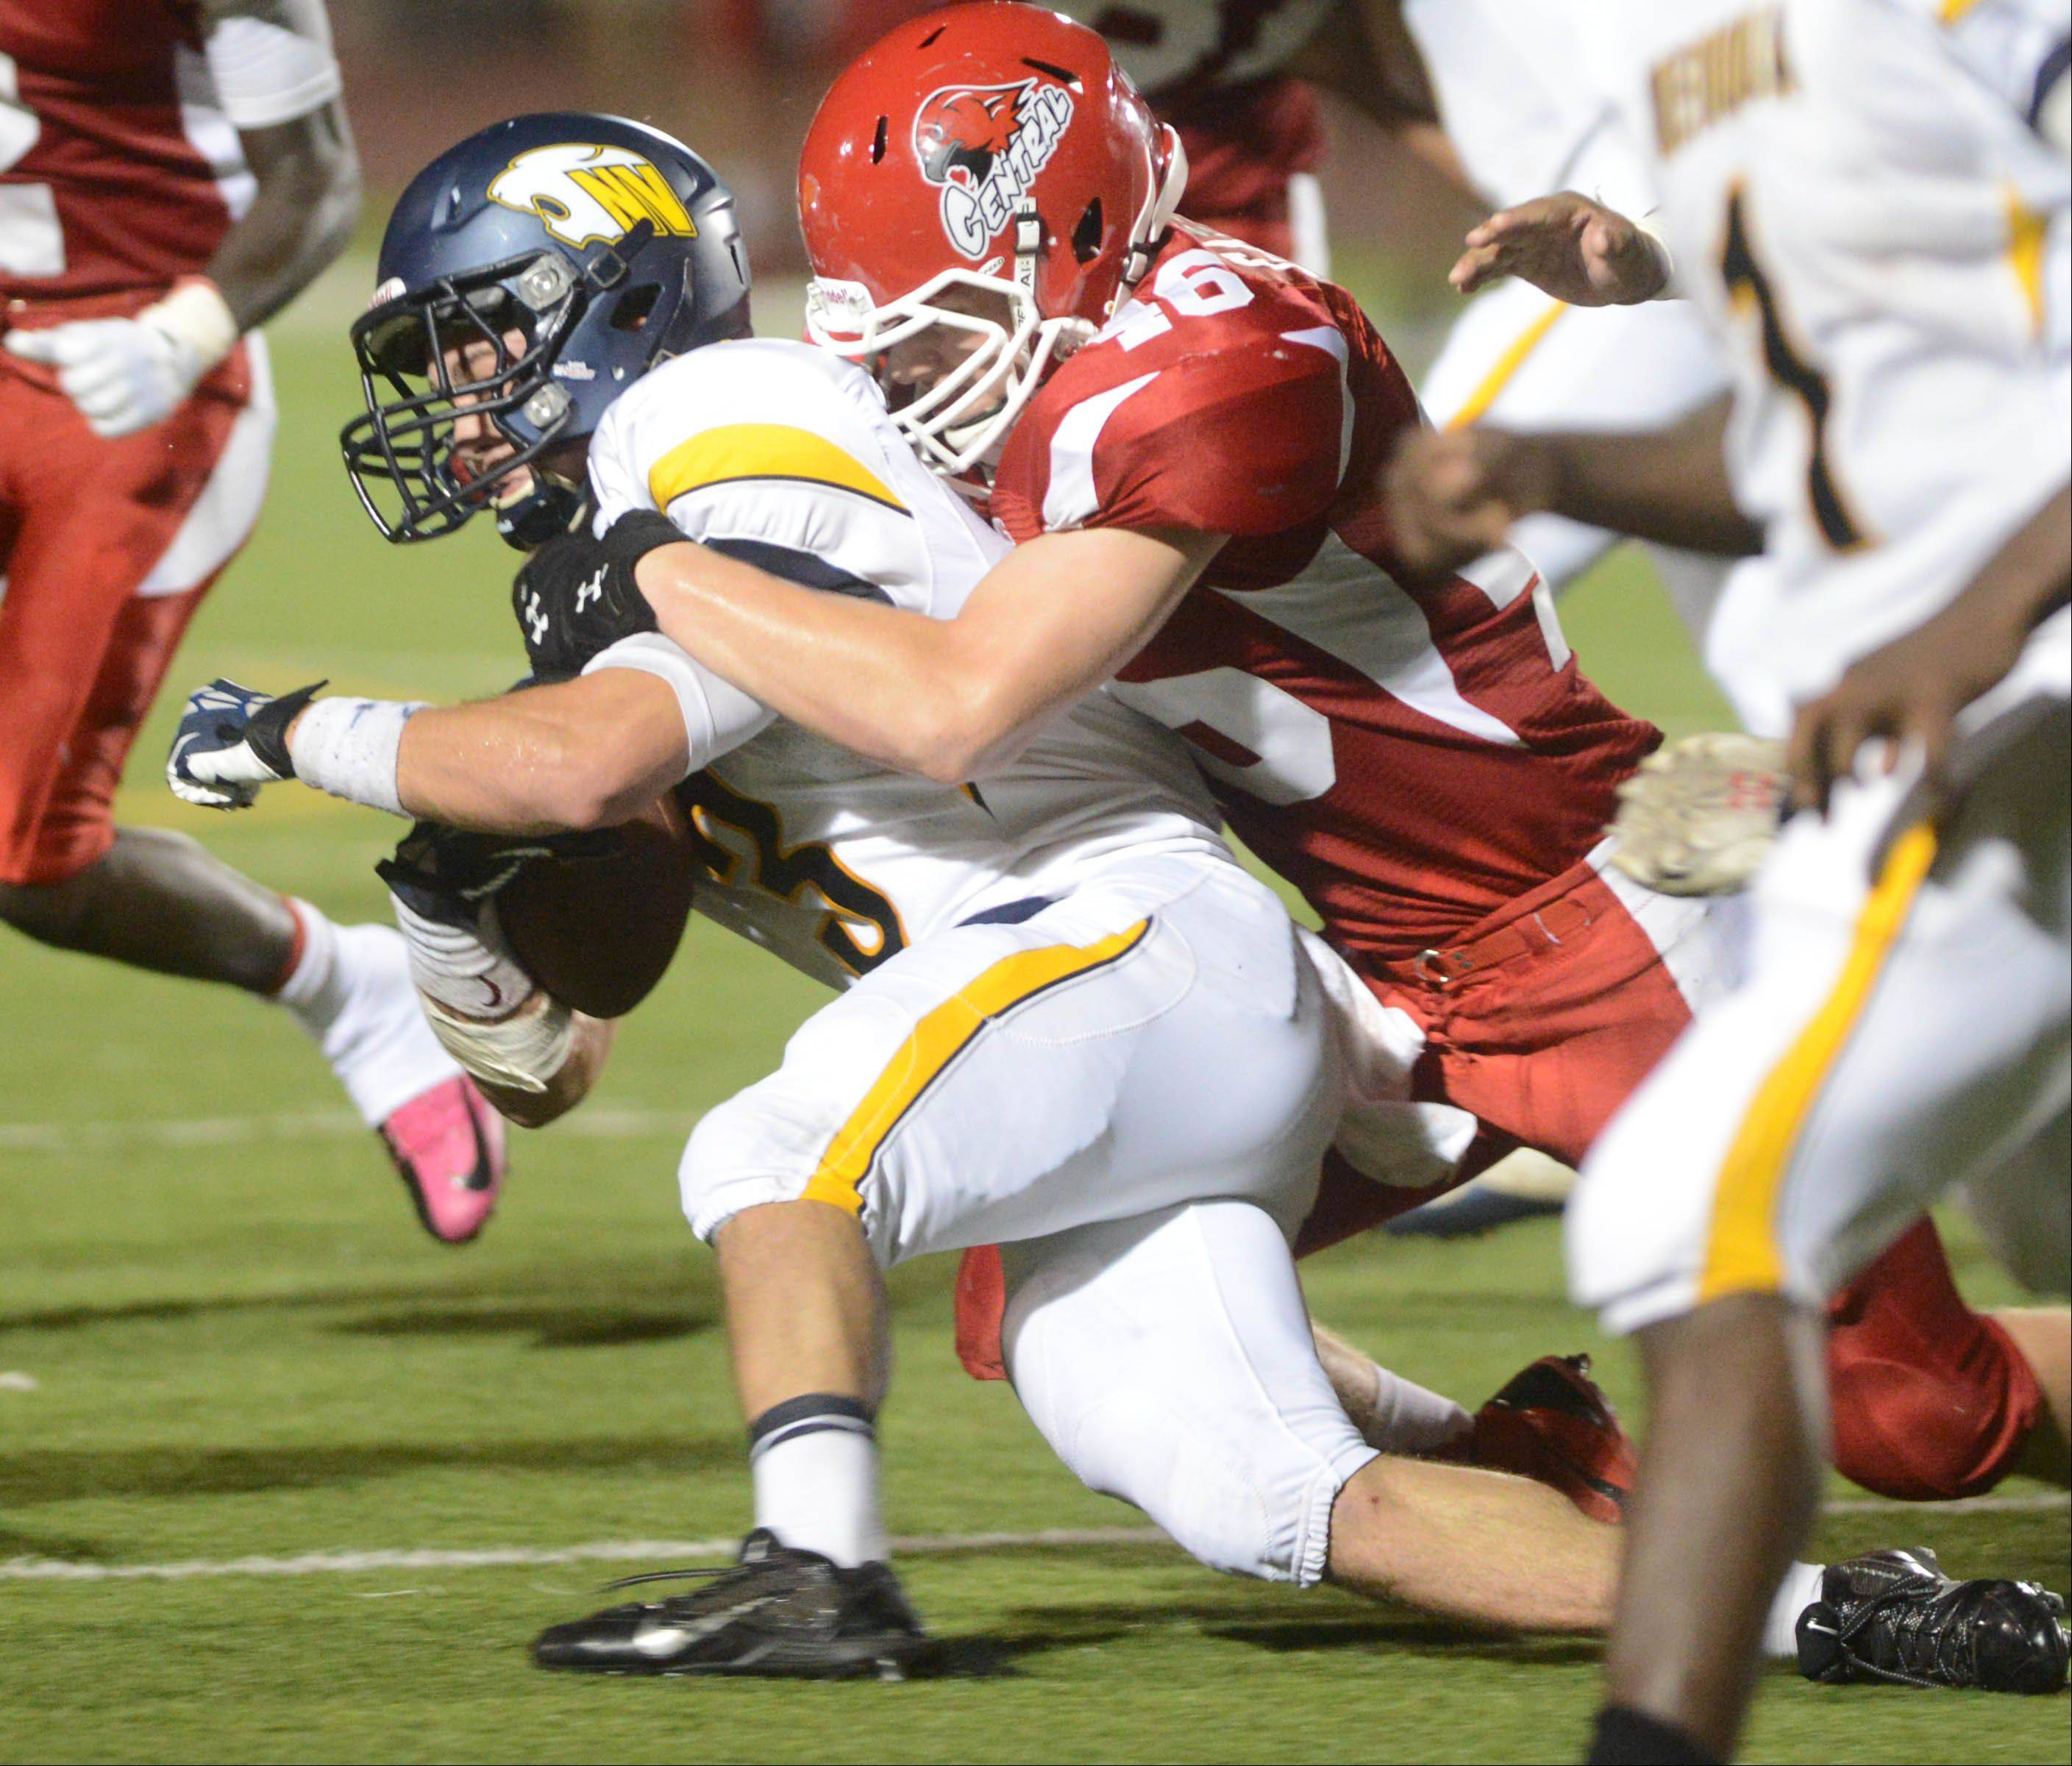 Mikey Dudek,left, of Neuqua Valley is pulled down by Billy Gammon of Naperville Central.